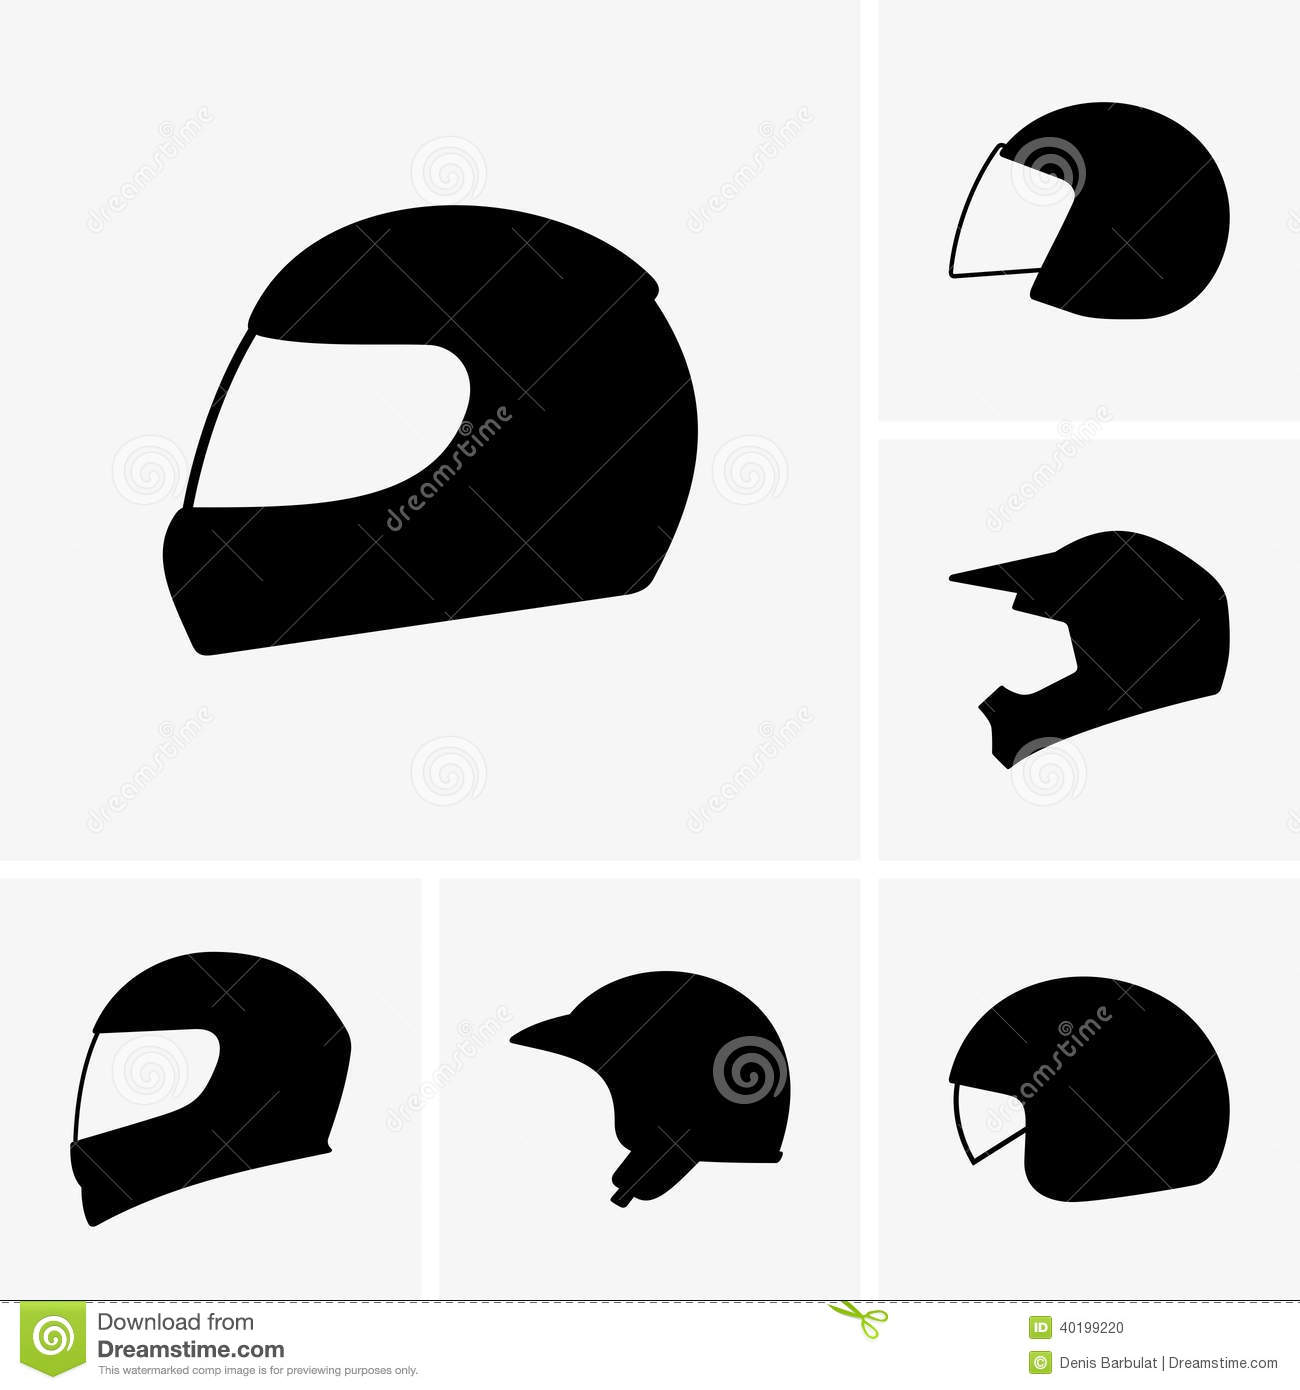 Casques de moto illustration de vecteur illustration du - Dessin casque moto ...